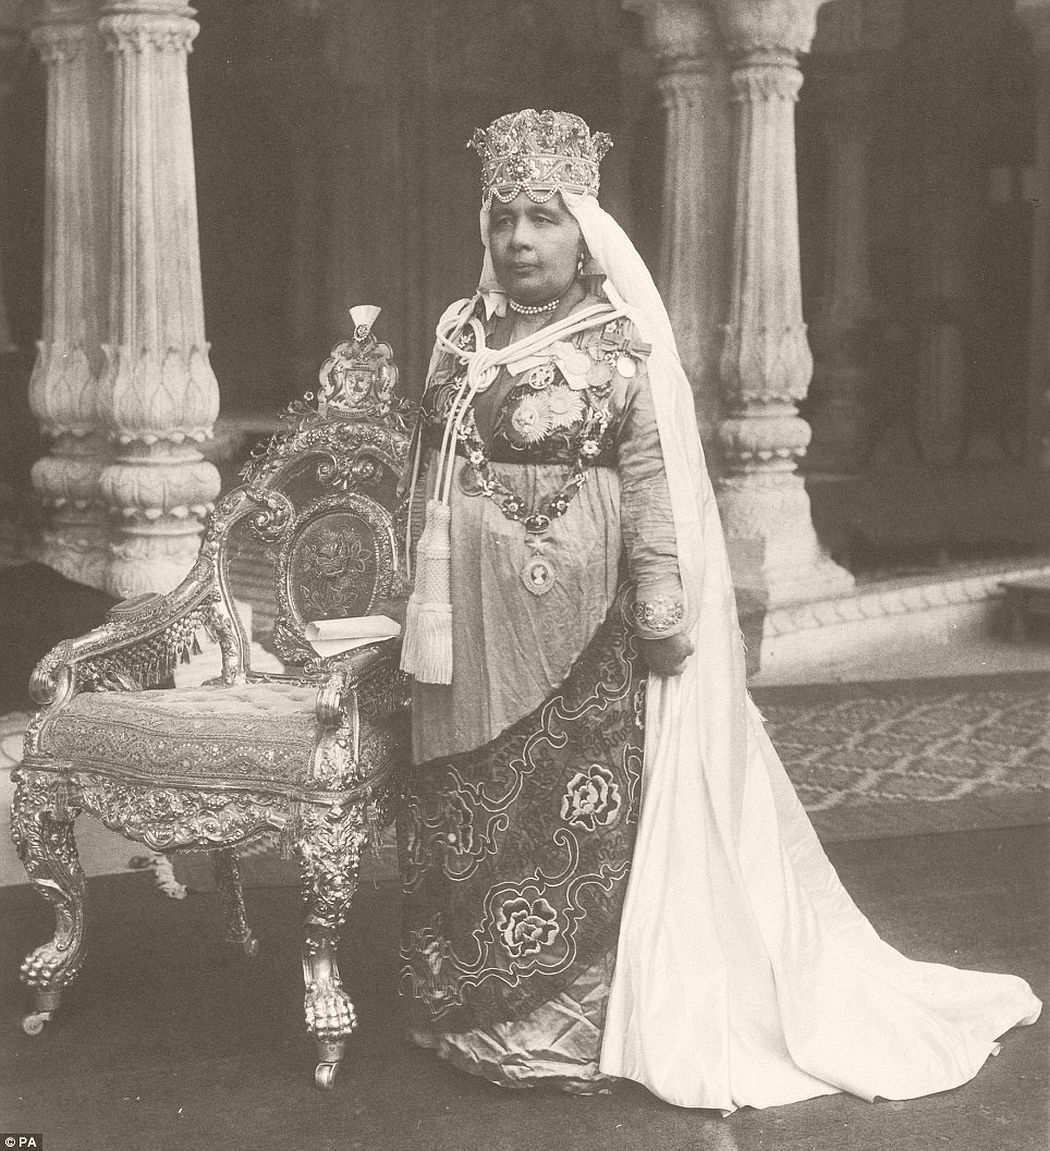 Nawab Sultan Kaikhusrau Jahan, Begum of Bhopal in 1922. She is seen here in full state dress in her palace in Bhopal, India.